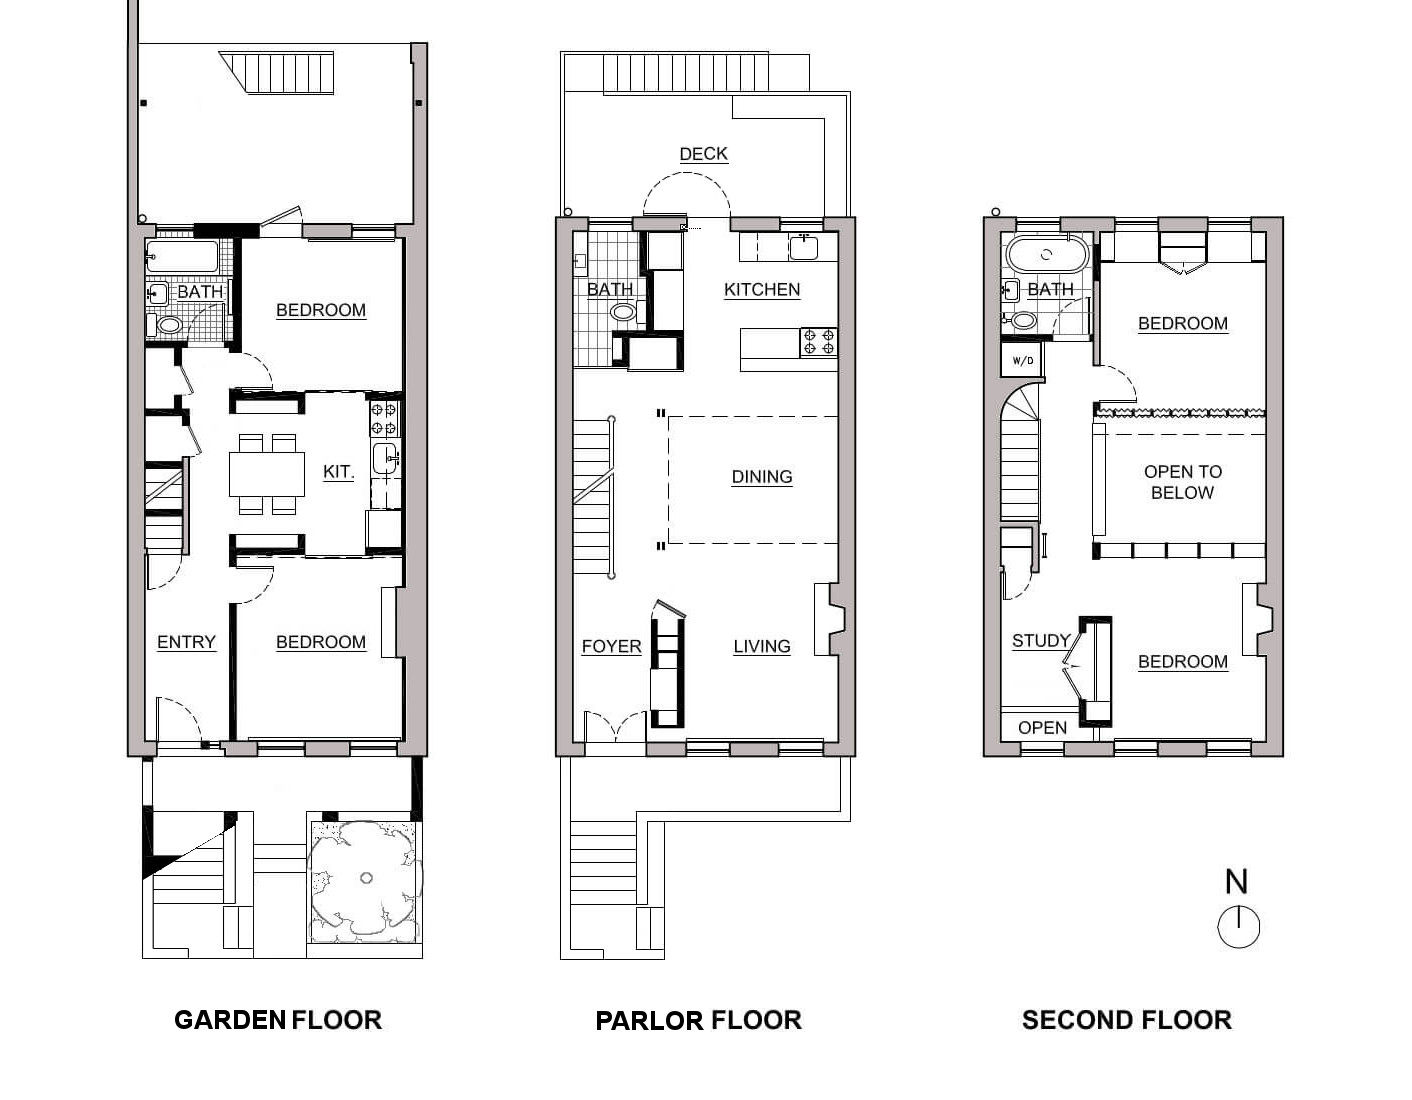 Delson or sherman architects pcbrooklyn architect for Row house design plans